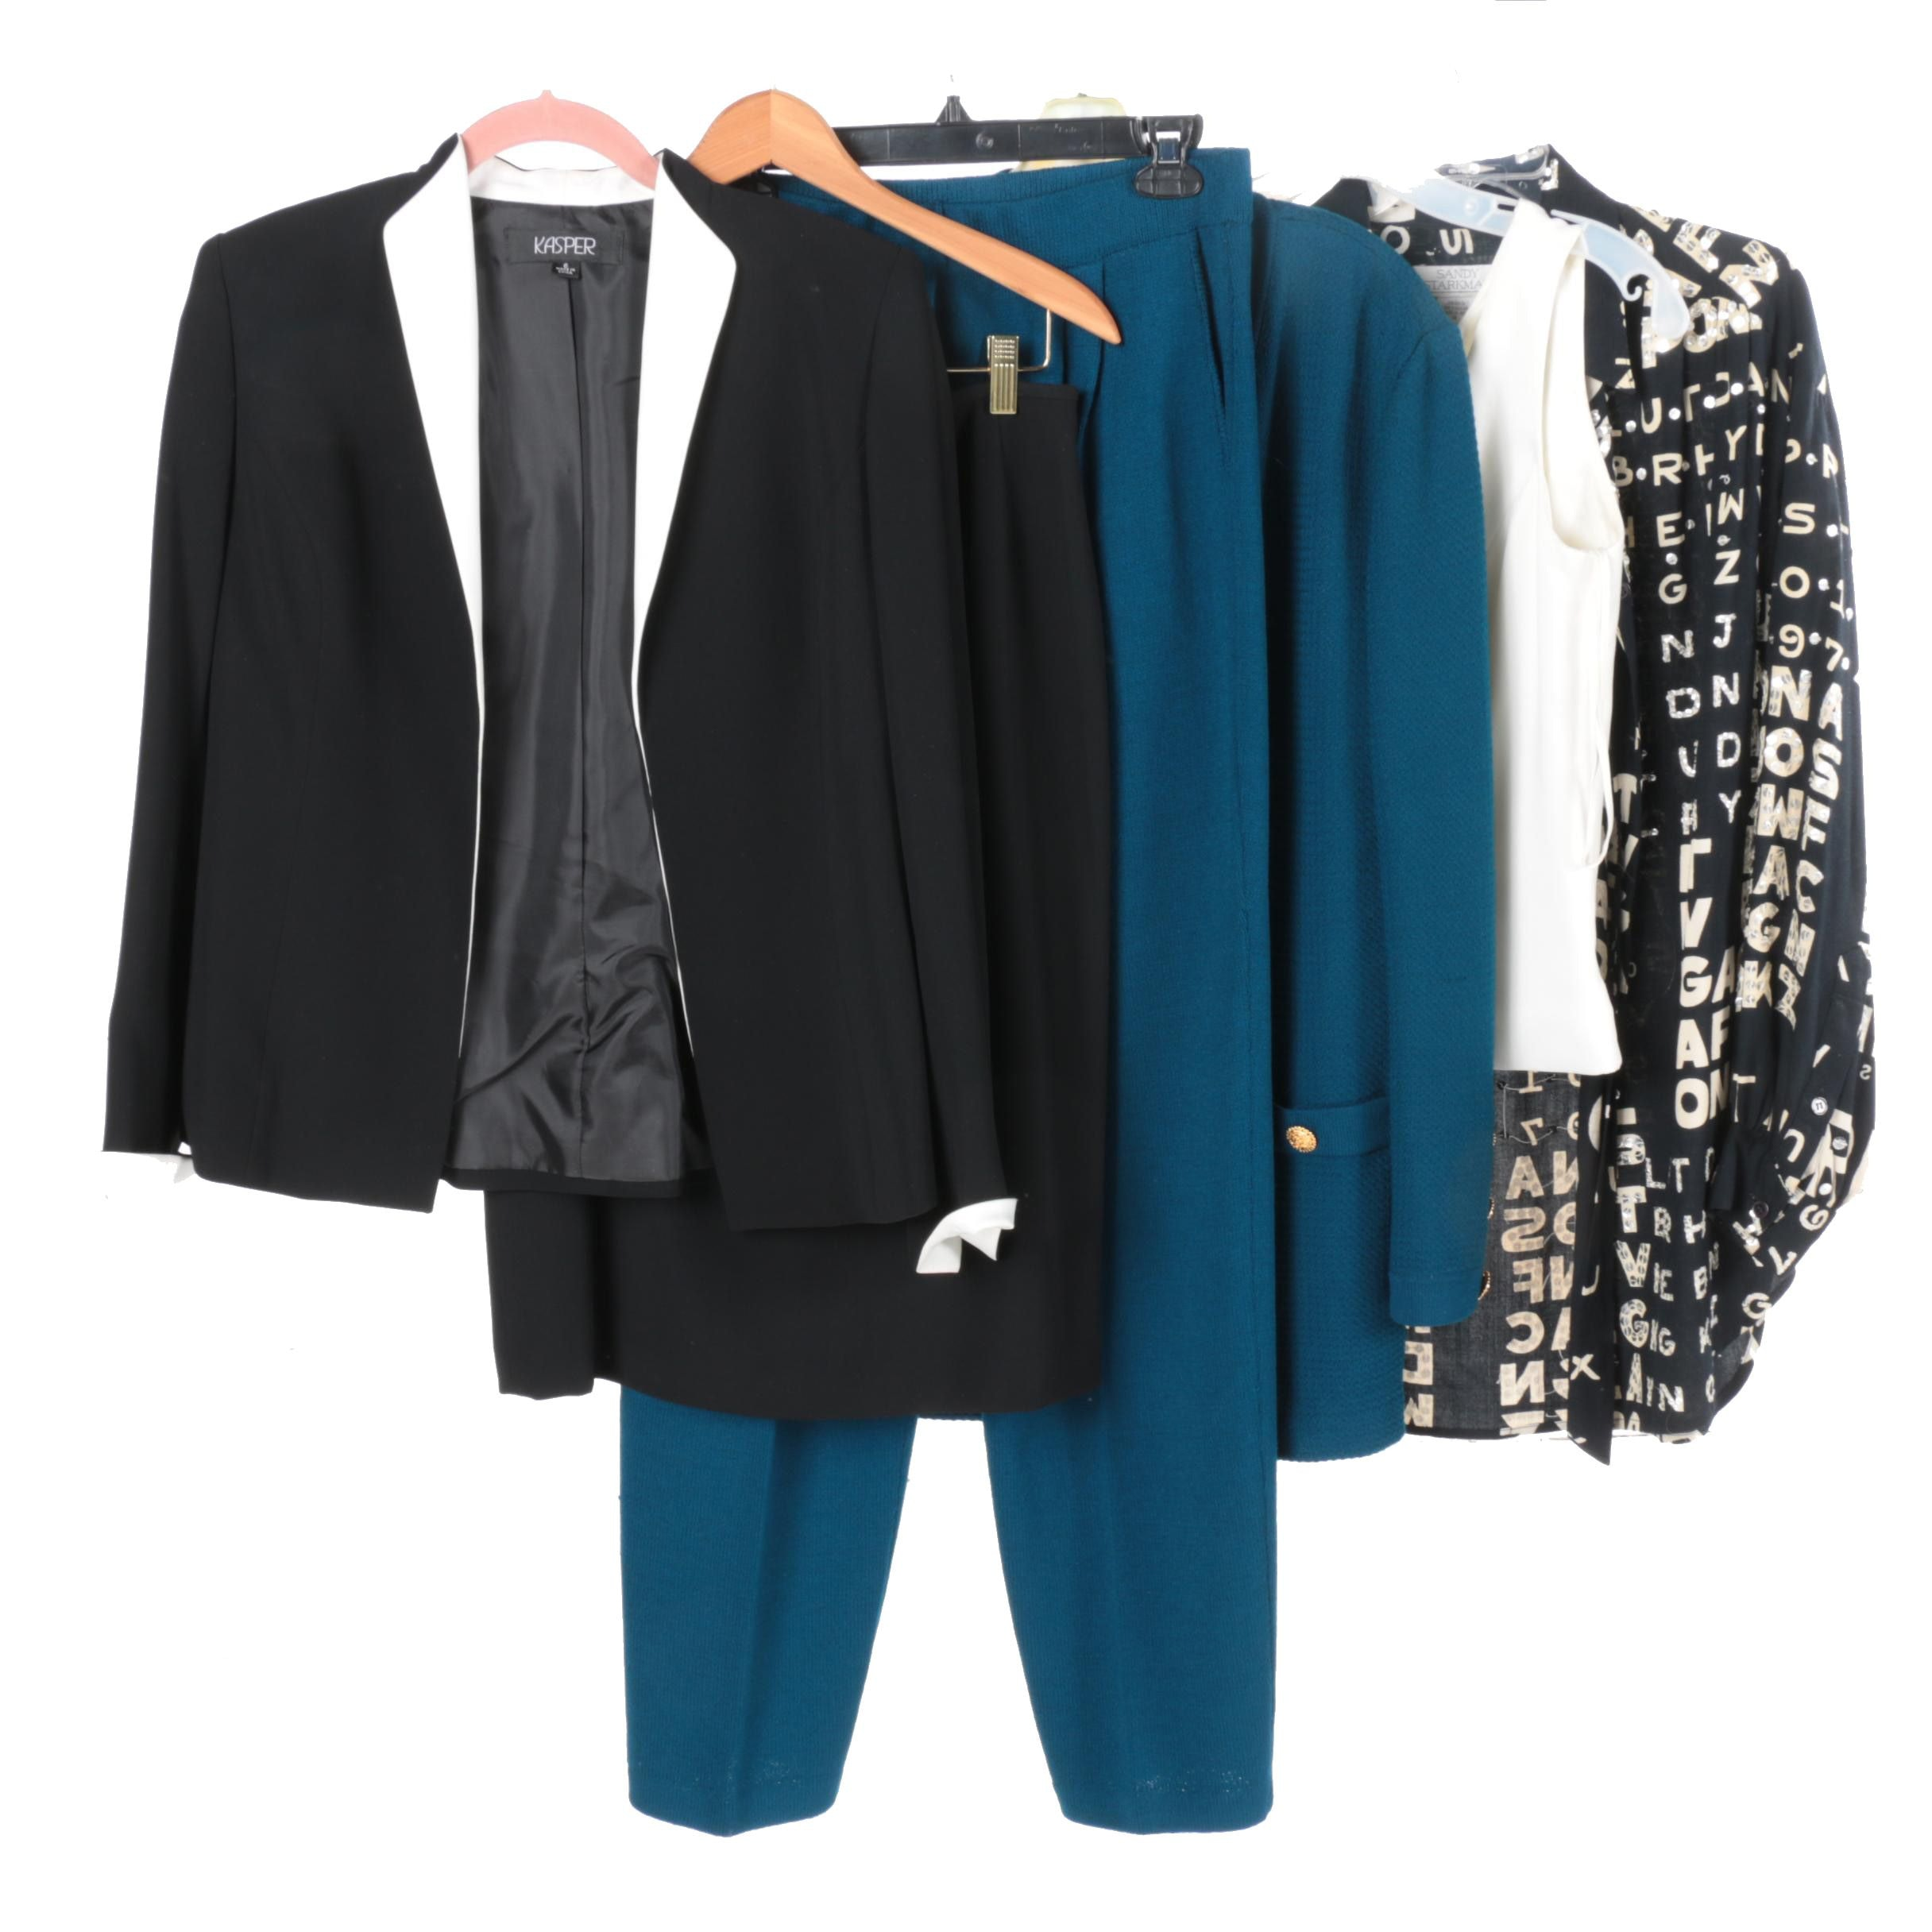 Women's Suit Separates Including St. John Collection